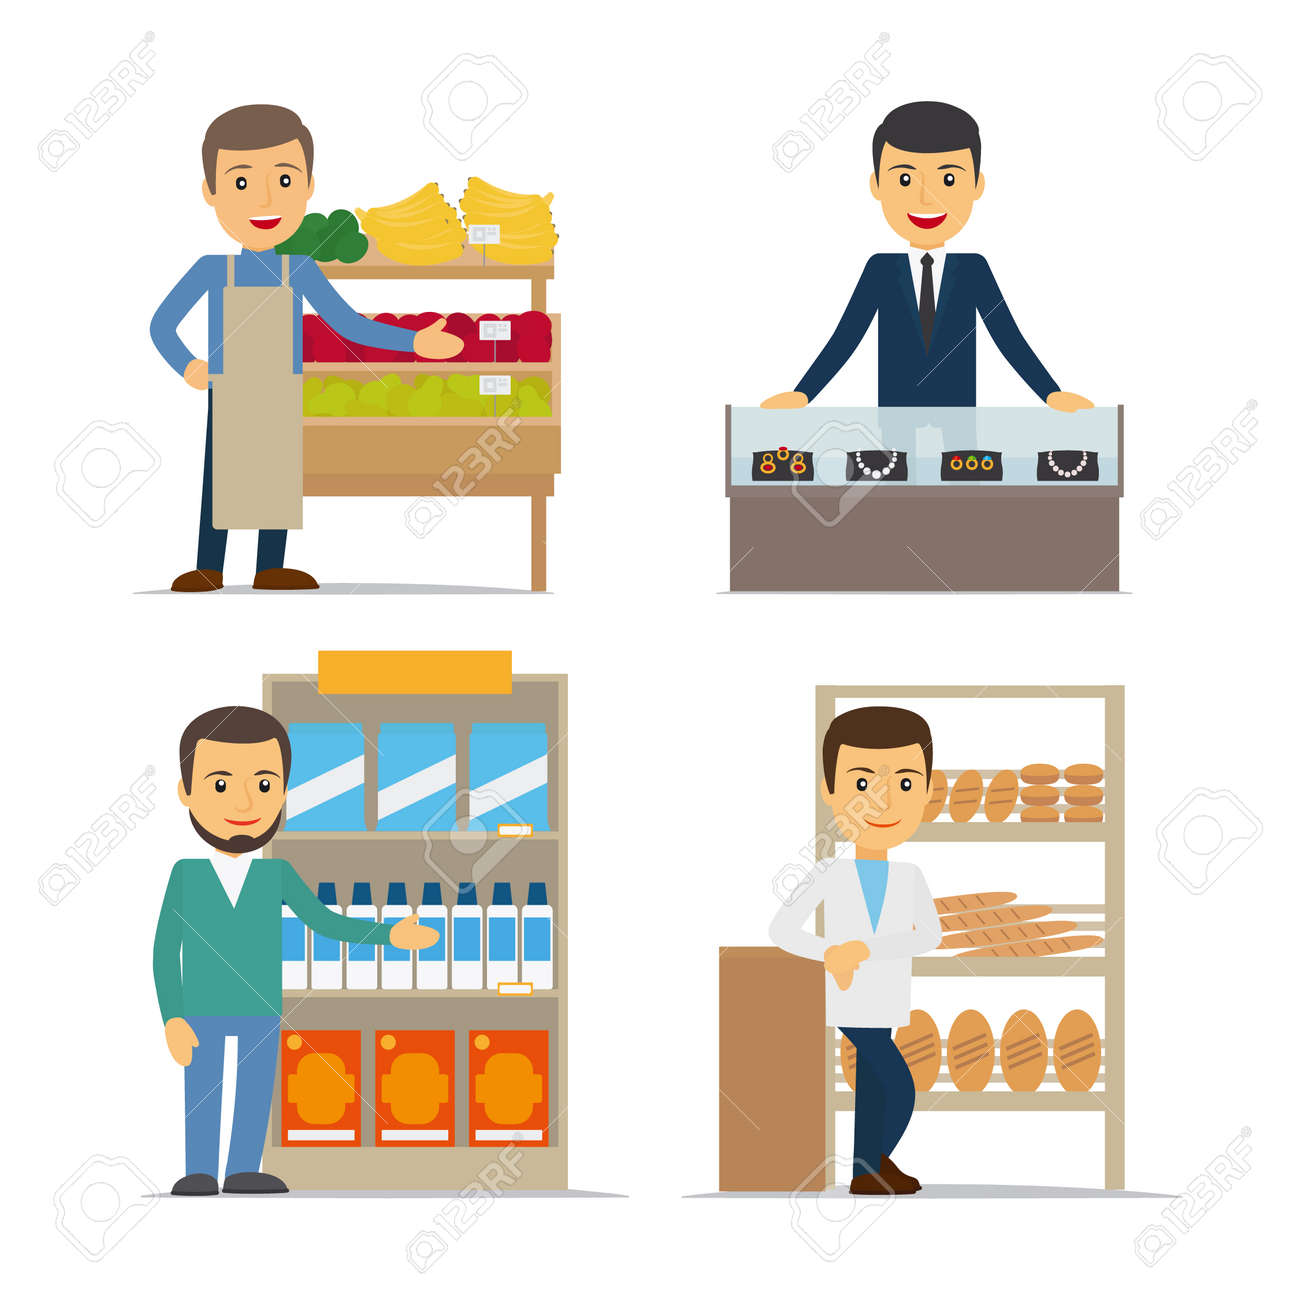 Seller at the counter vector illustration. Jewelry, bread and grocery store. - 165925892